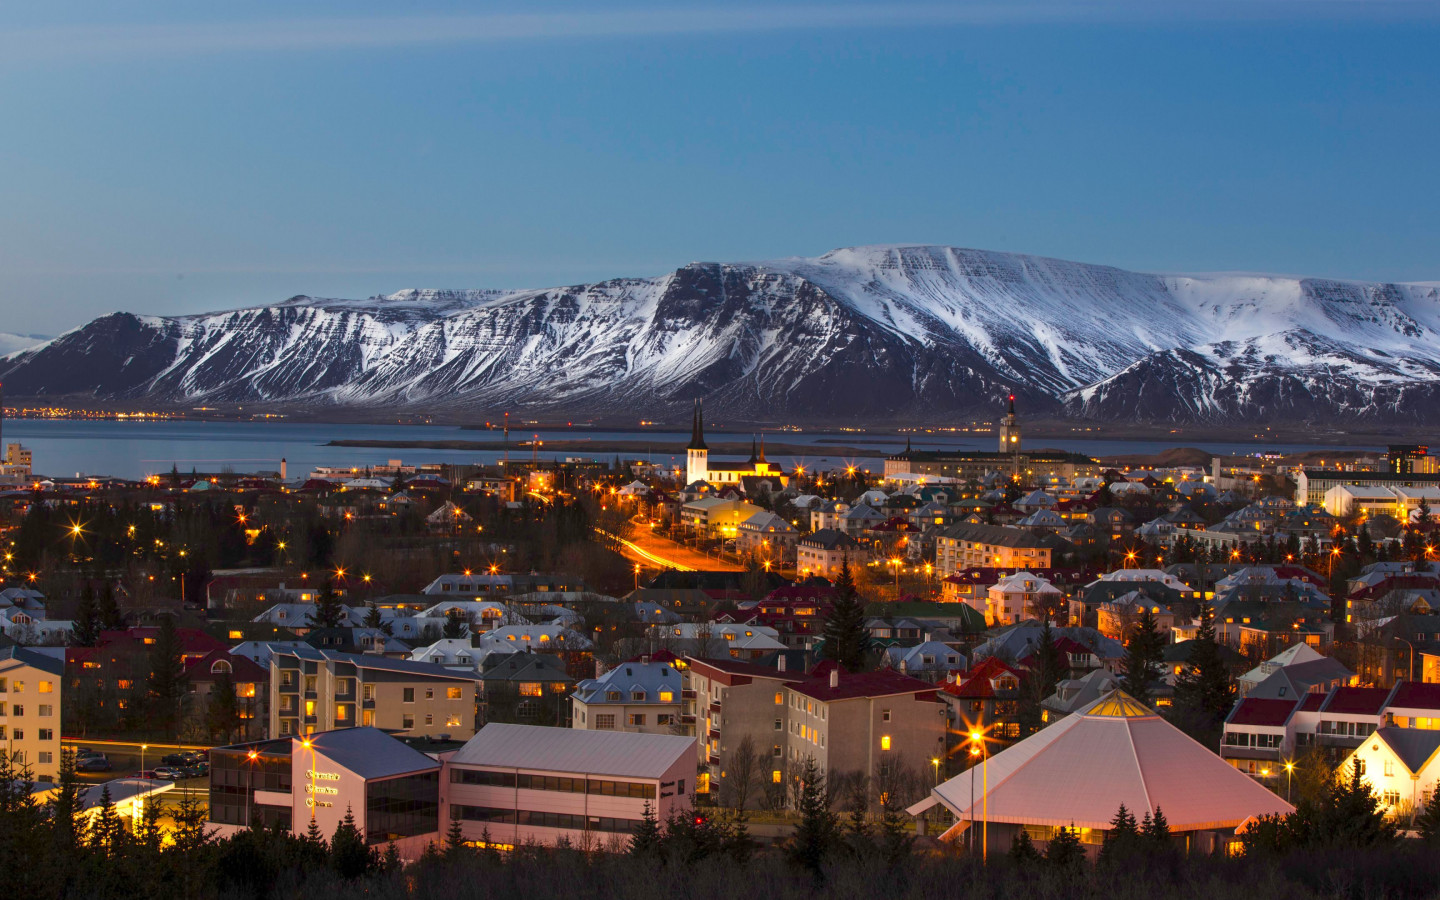 View over the Reykjavik city | 1440x900 wallpaper